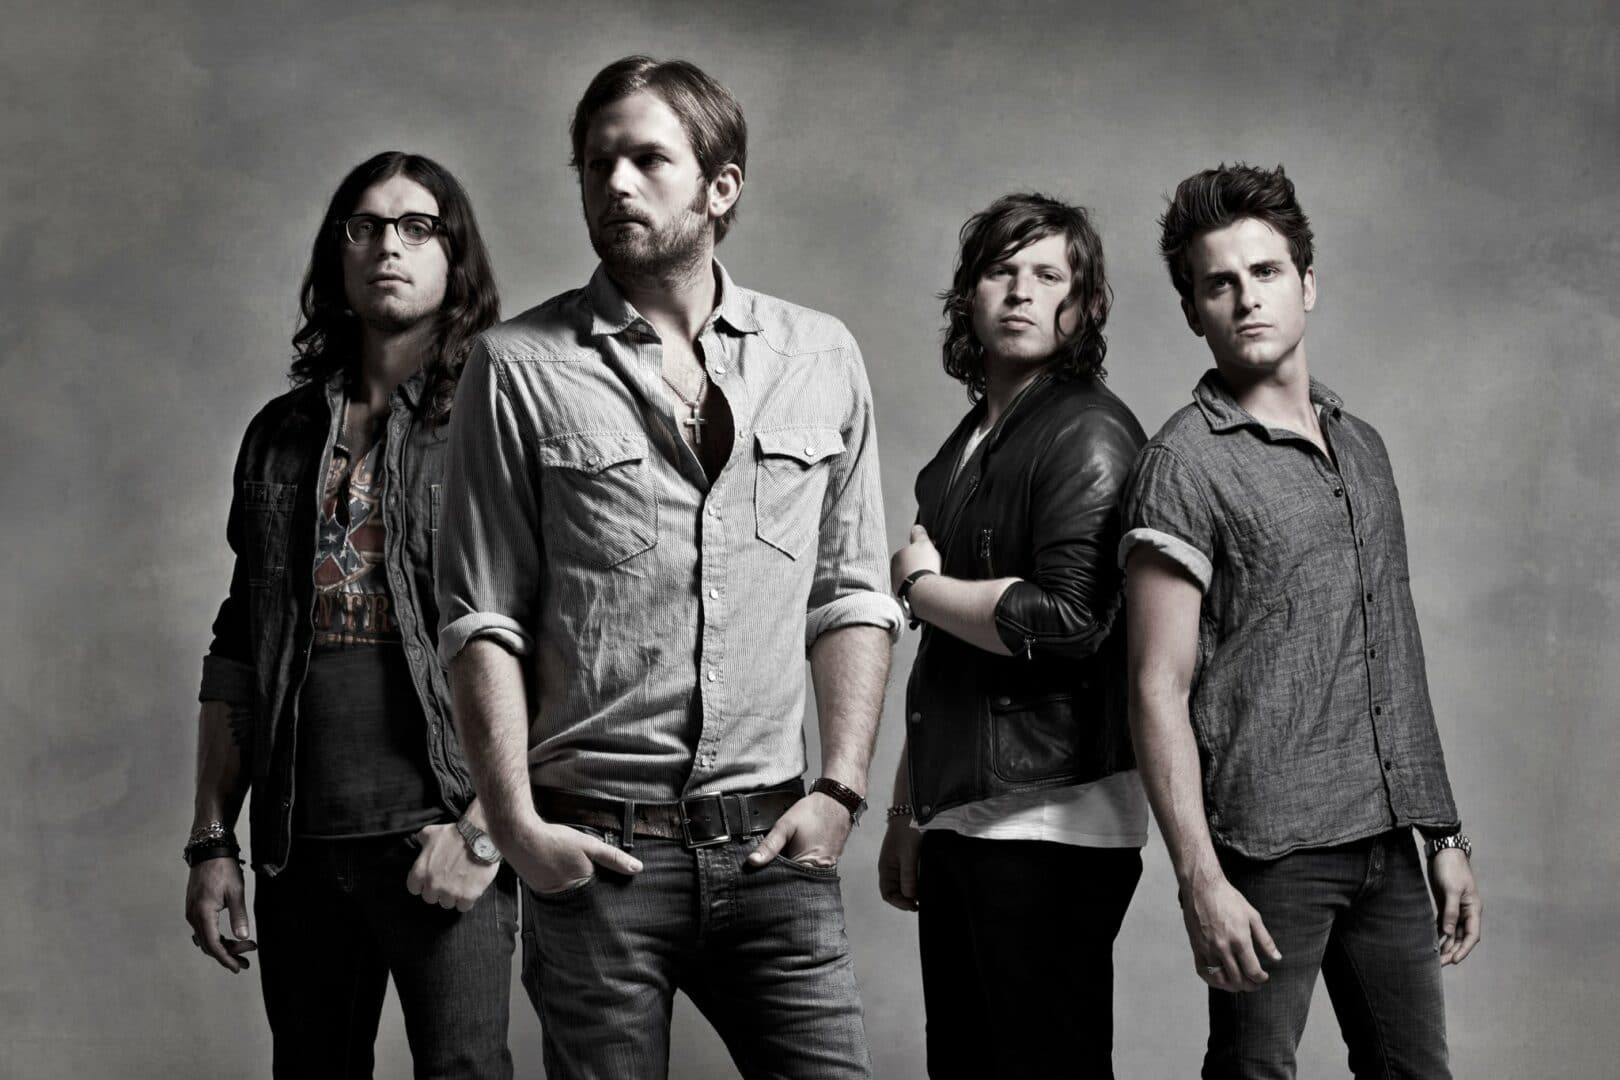 Kings of Leon is releasing their next album as an NFT with perks